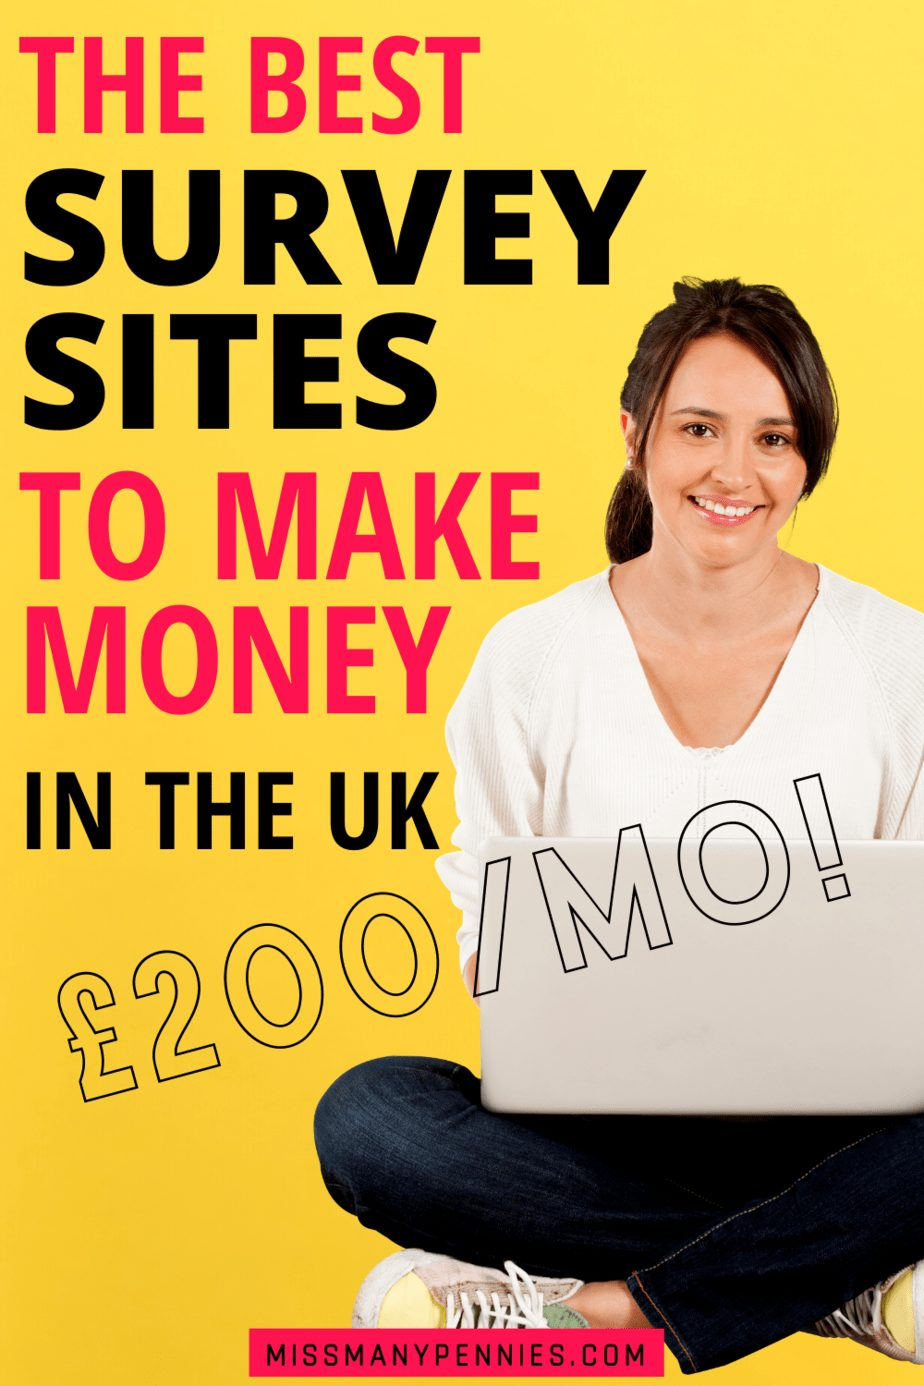 the best survey sites to make money in the UK